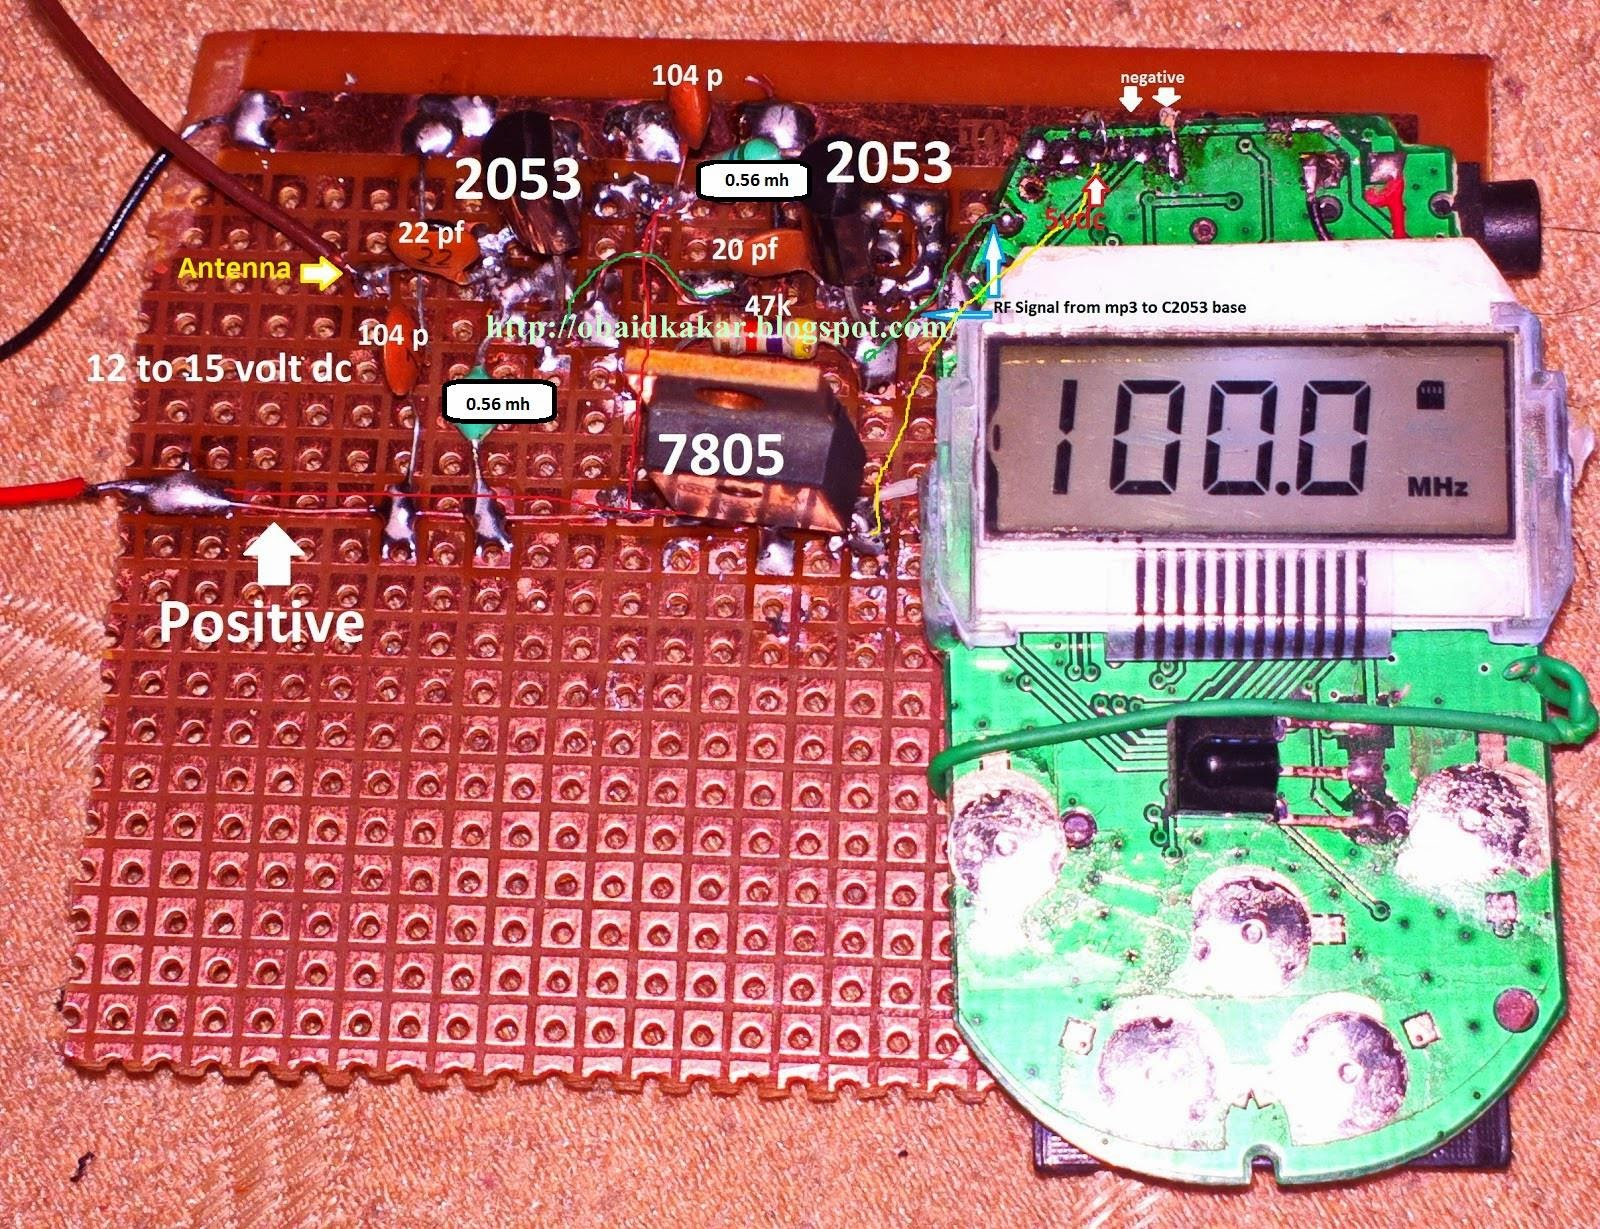 Stable Fm Transmitter Circuit Diagram Ksf Electronics 6 Watts Rf Field Strength Meter Also Available Below Up To 3 Different I Have Tested Photo Added